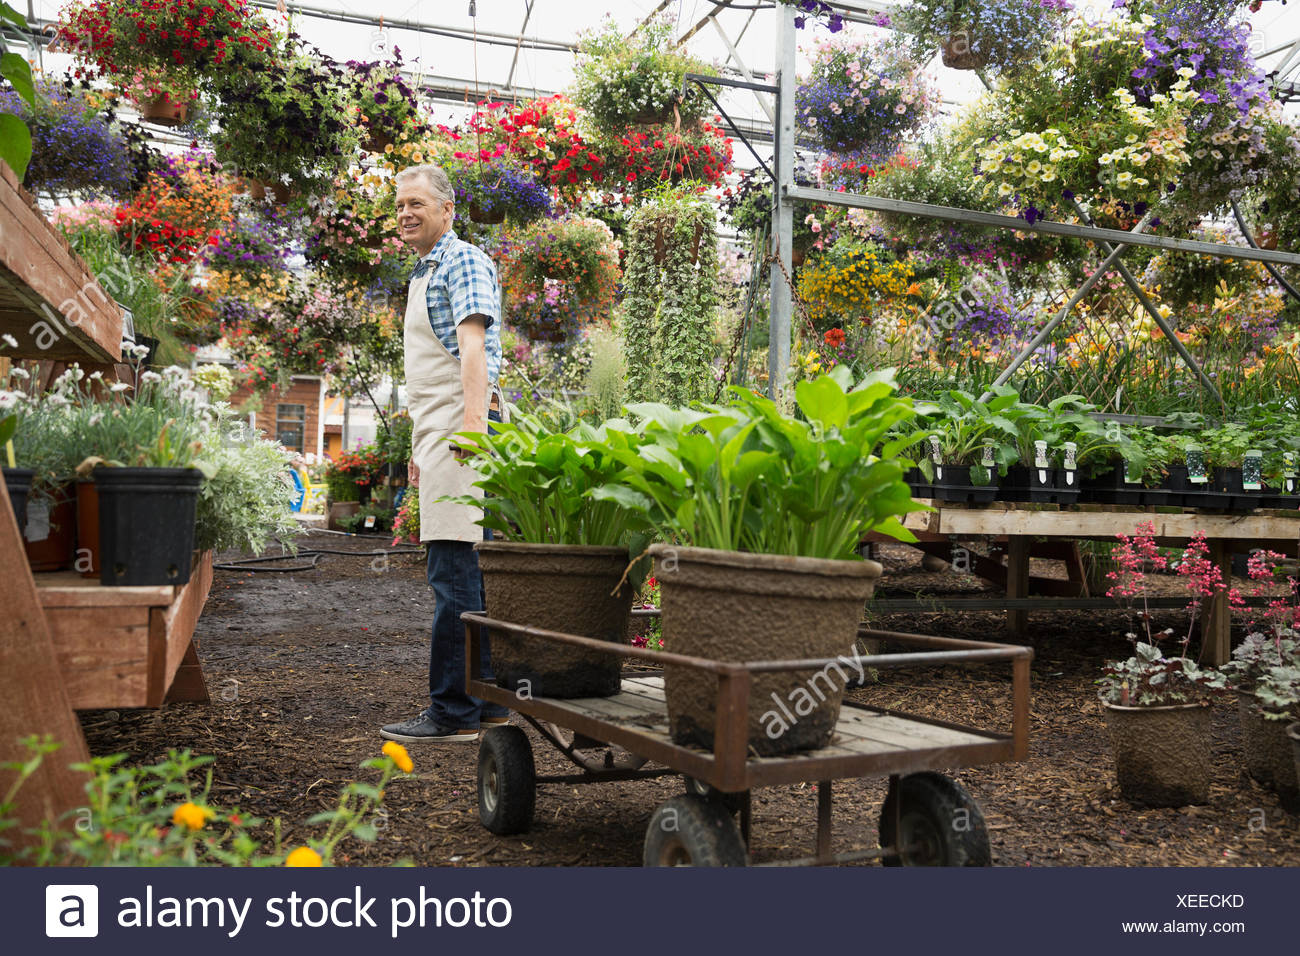 Worker in plant nursery greenhouse - Stock Image